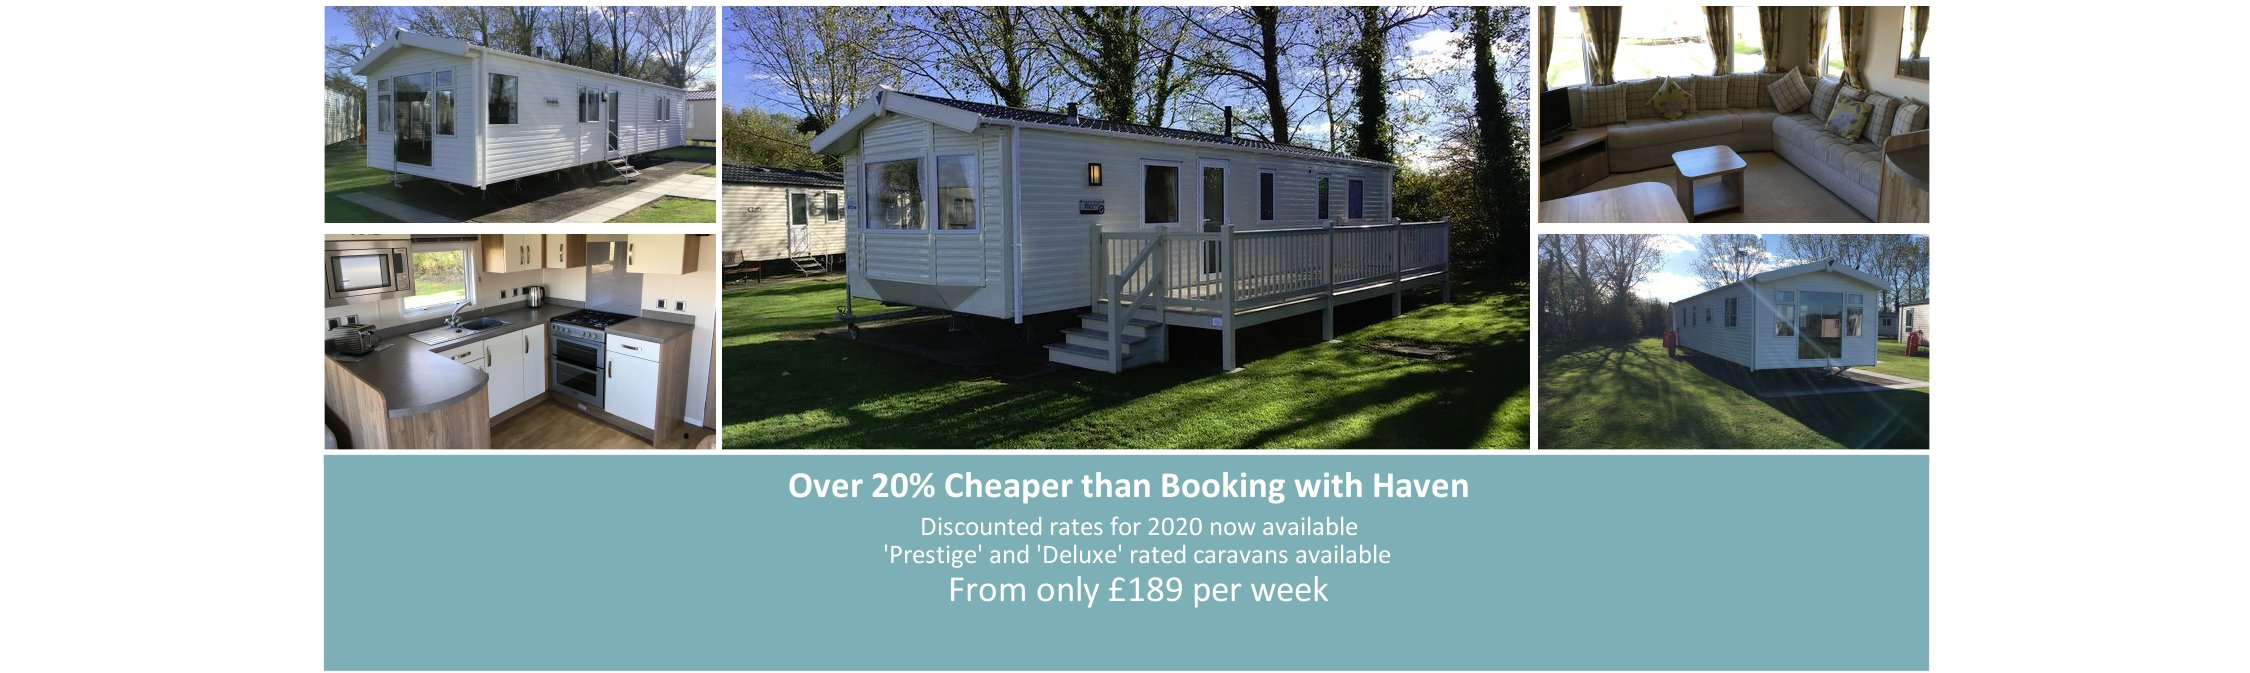 Haven Holidays, caravan holiday, Burnham-on-Sea